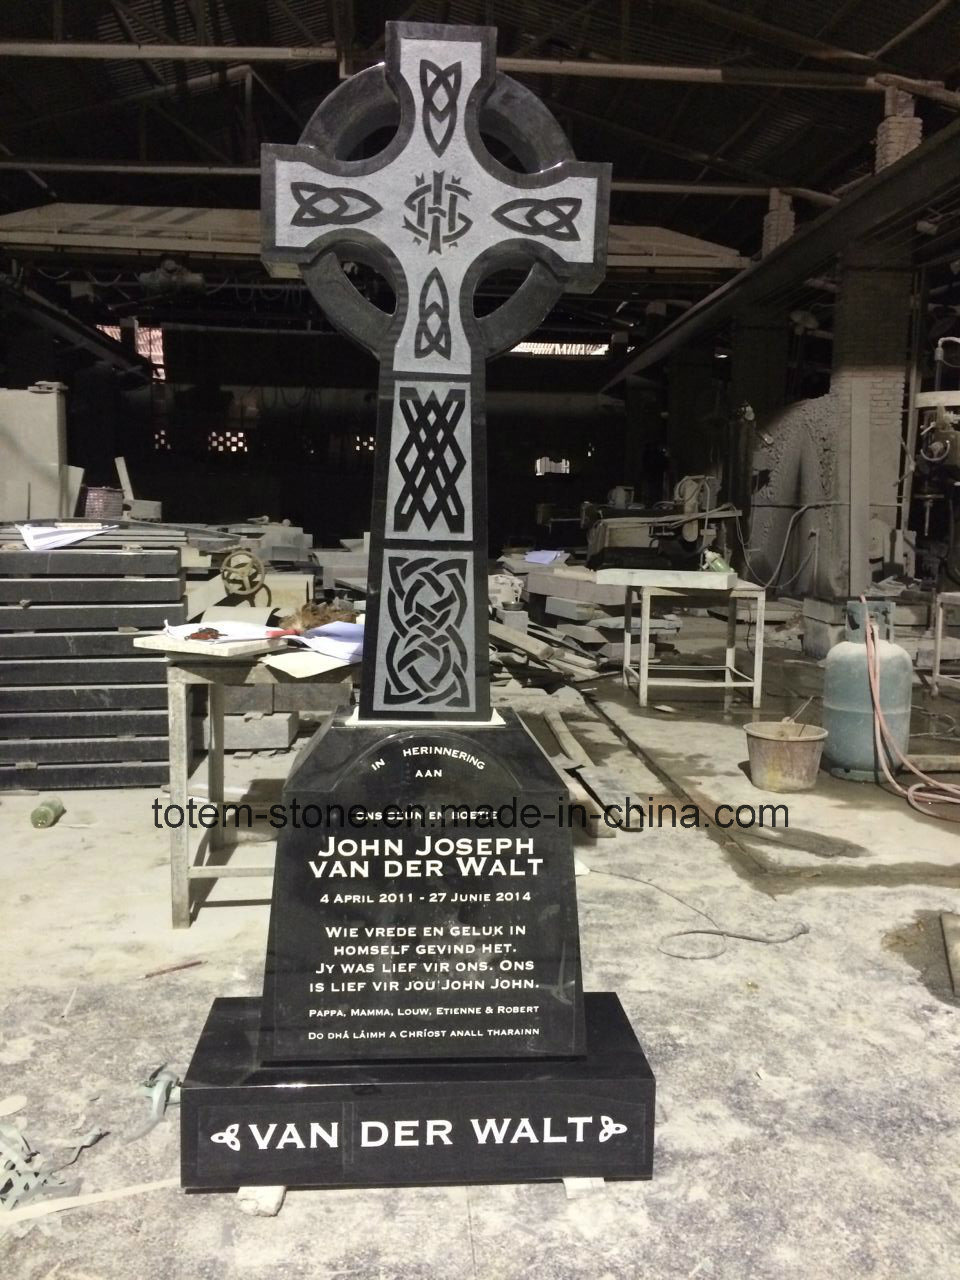 Granite Discount Grave Plaques Cemetery Memorial Stones Monuments Headstones for Sale